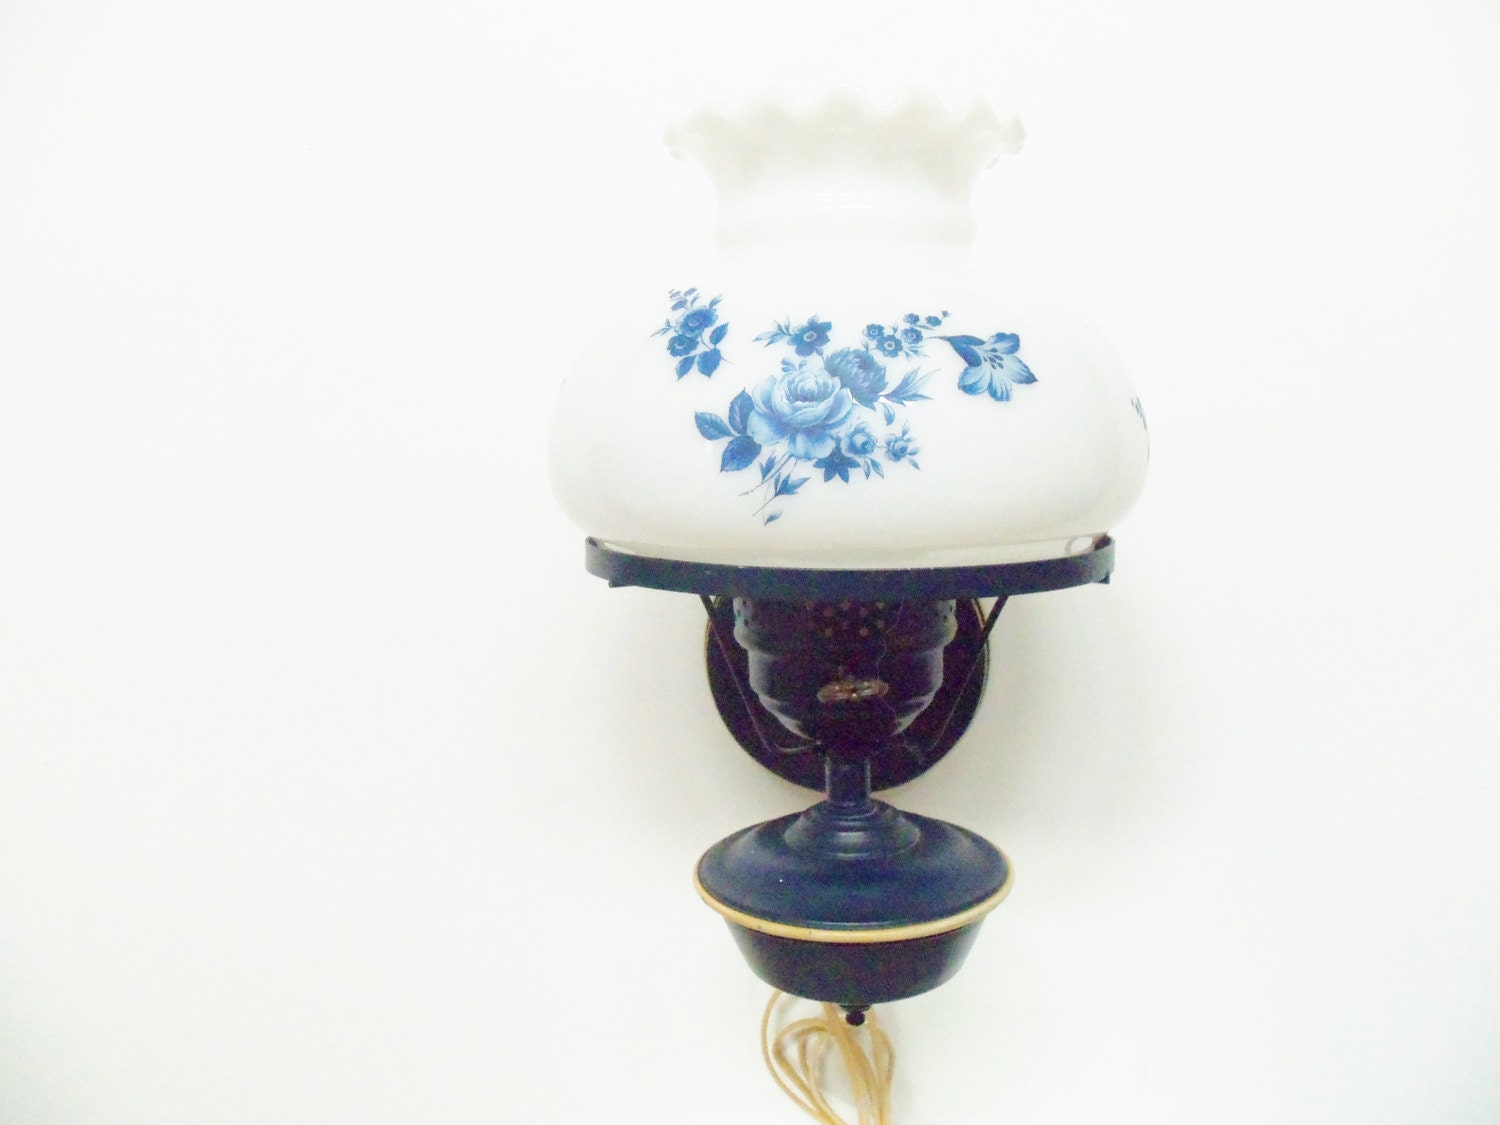 Wall Mount Electric Lamp Light Navy Blue Hurricane Style White